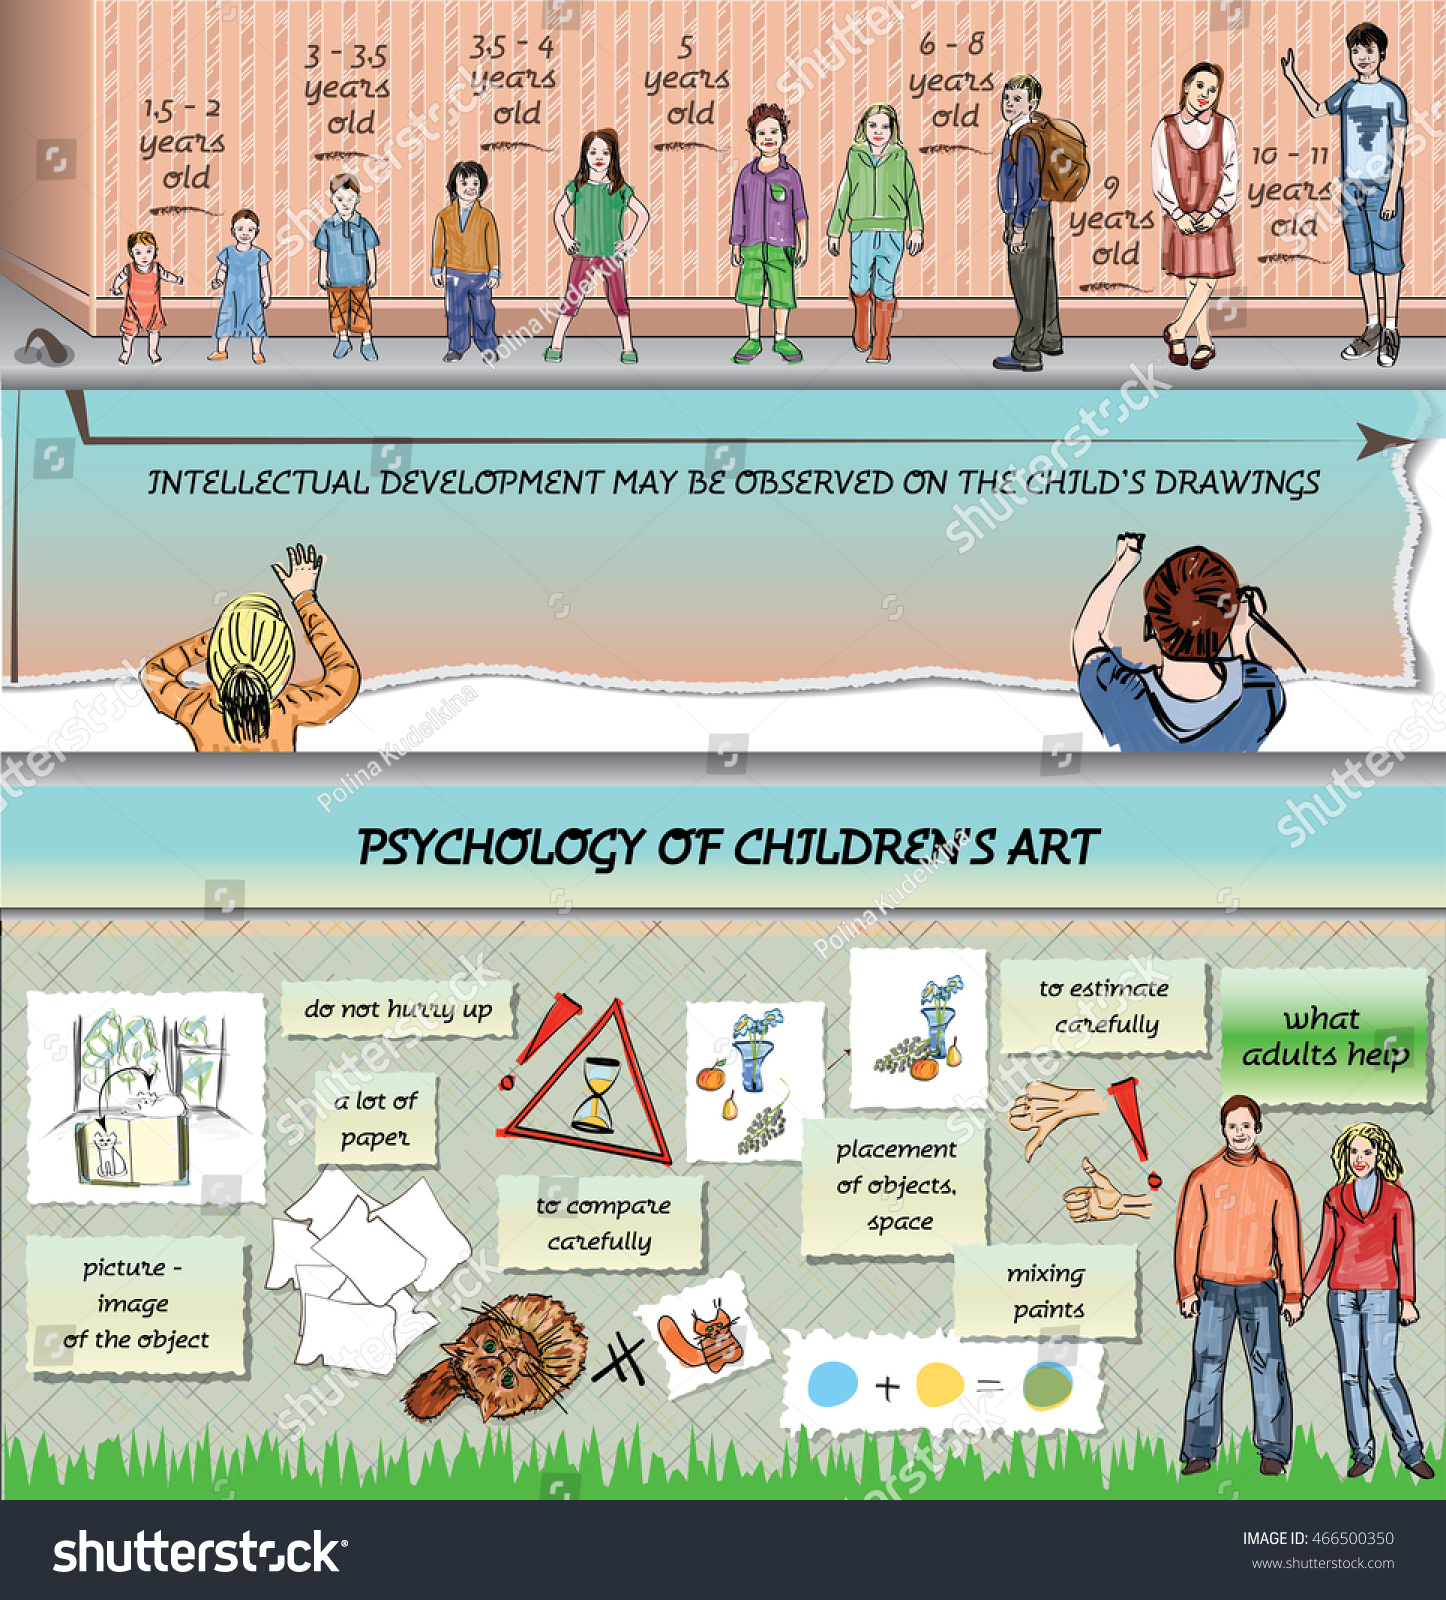 psychology and children Learn about child psychology, which focuses on the mind and behavior of  children from prenatal development through adolescence.